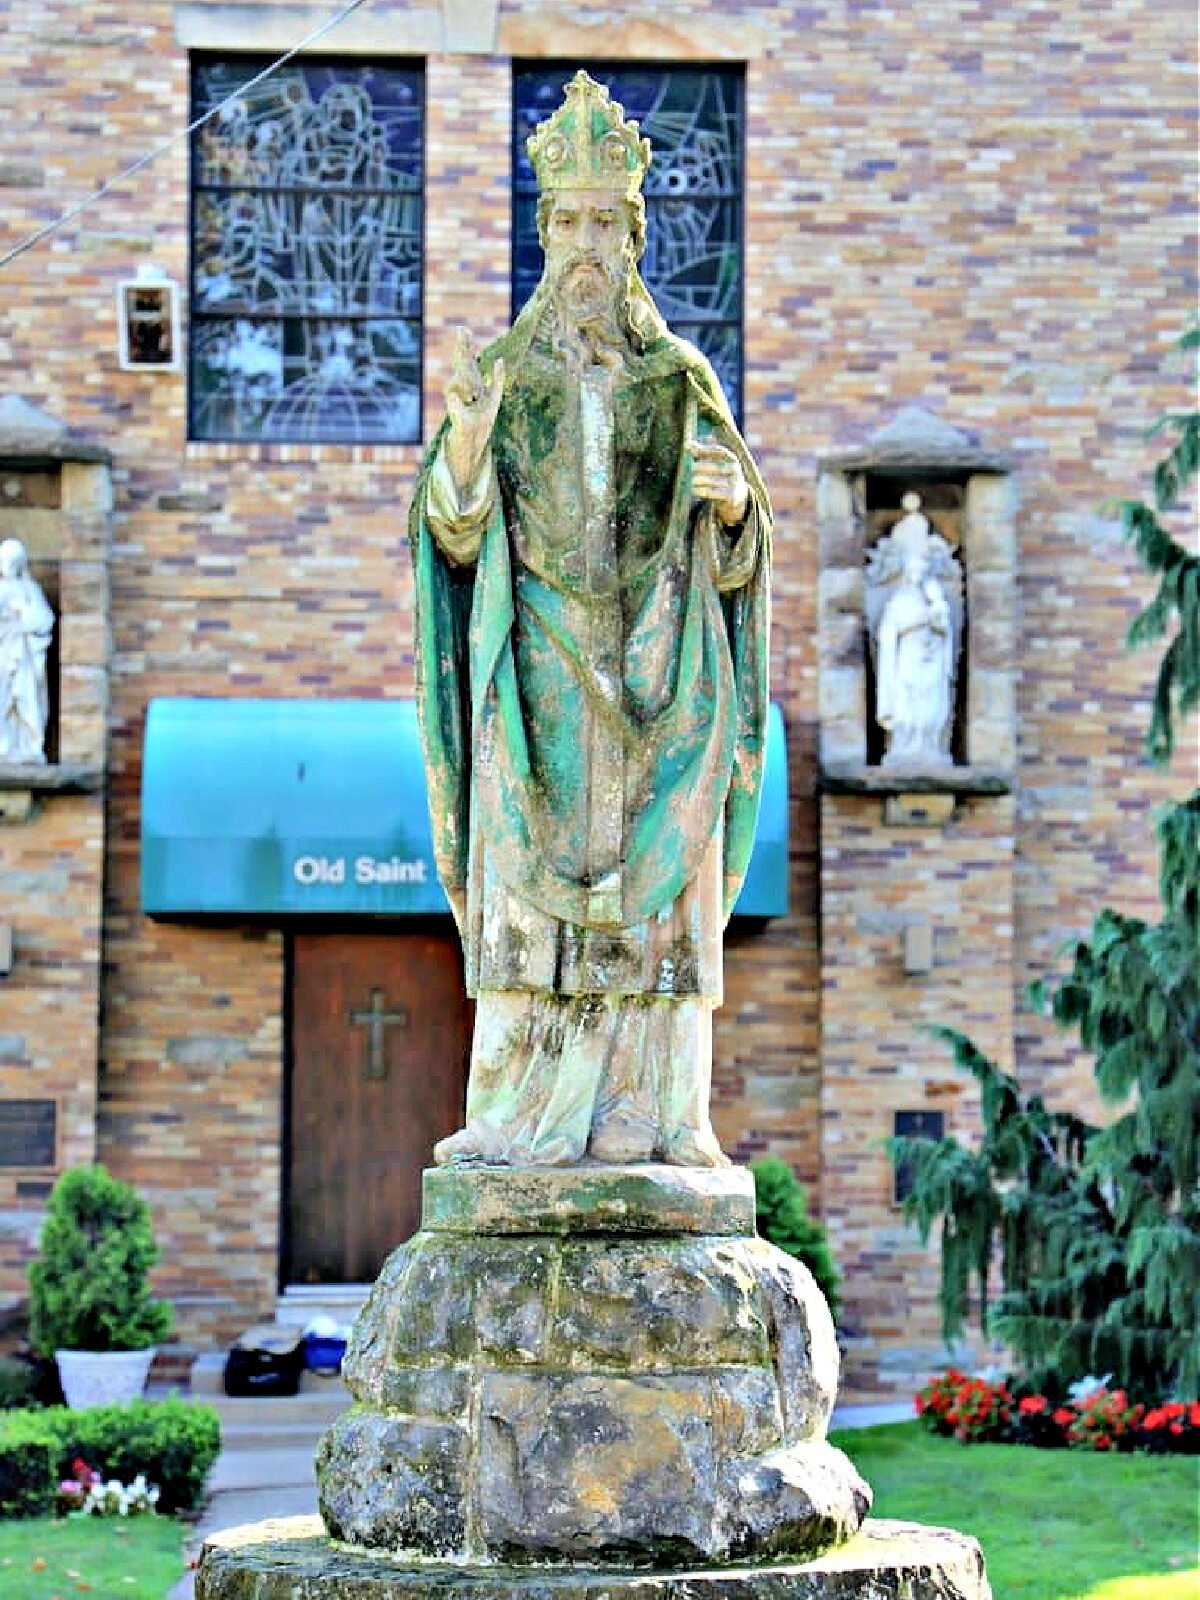 Statue in front of Old St. Patrick's Church in Pittsburgh.